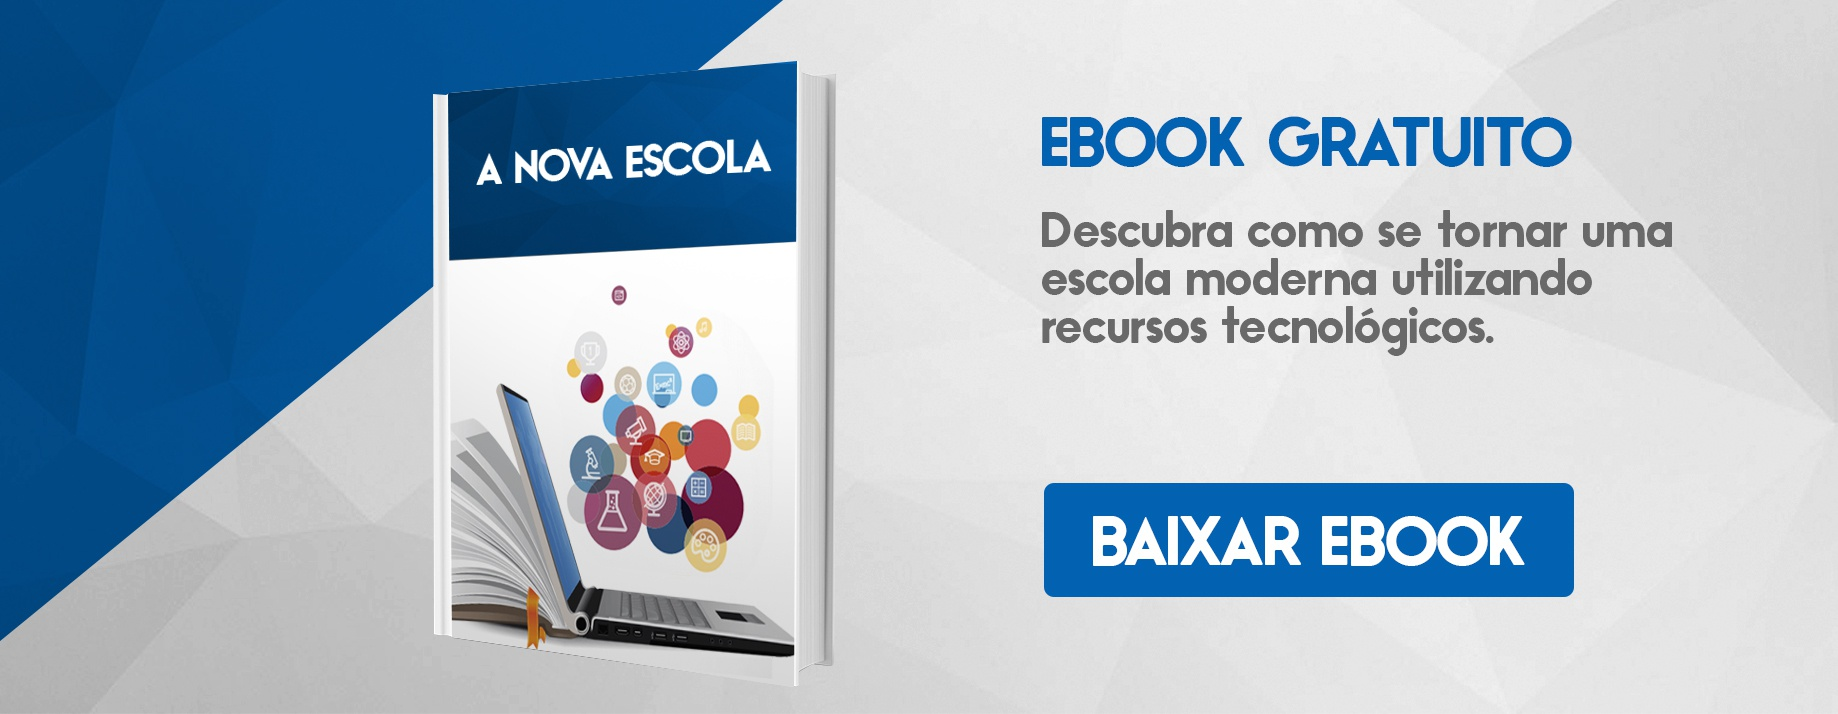 eBook - A Nova Escola